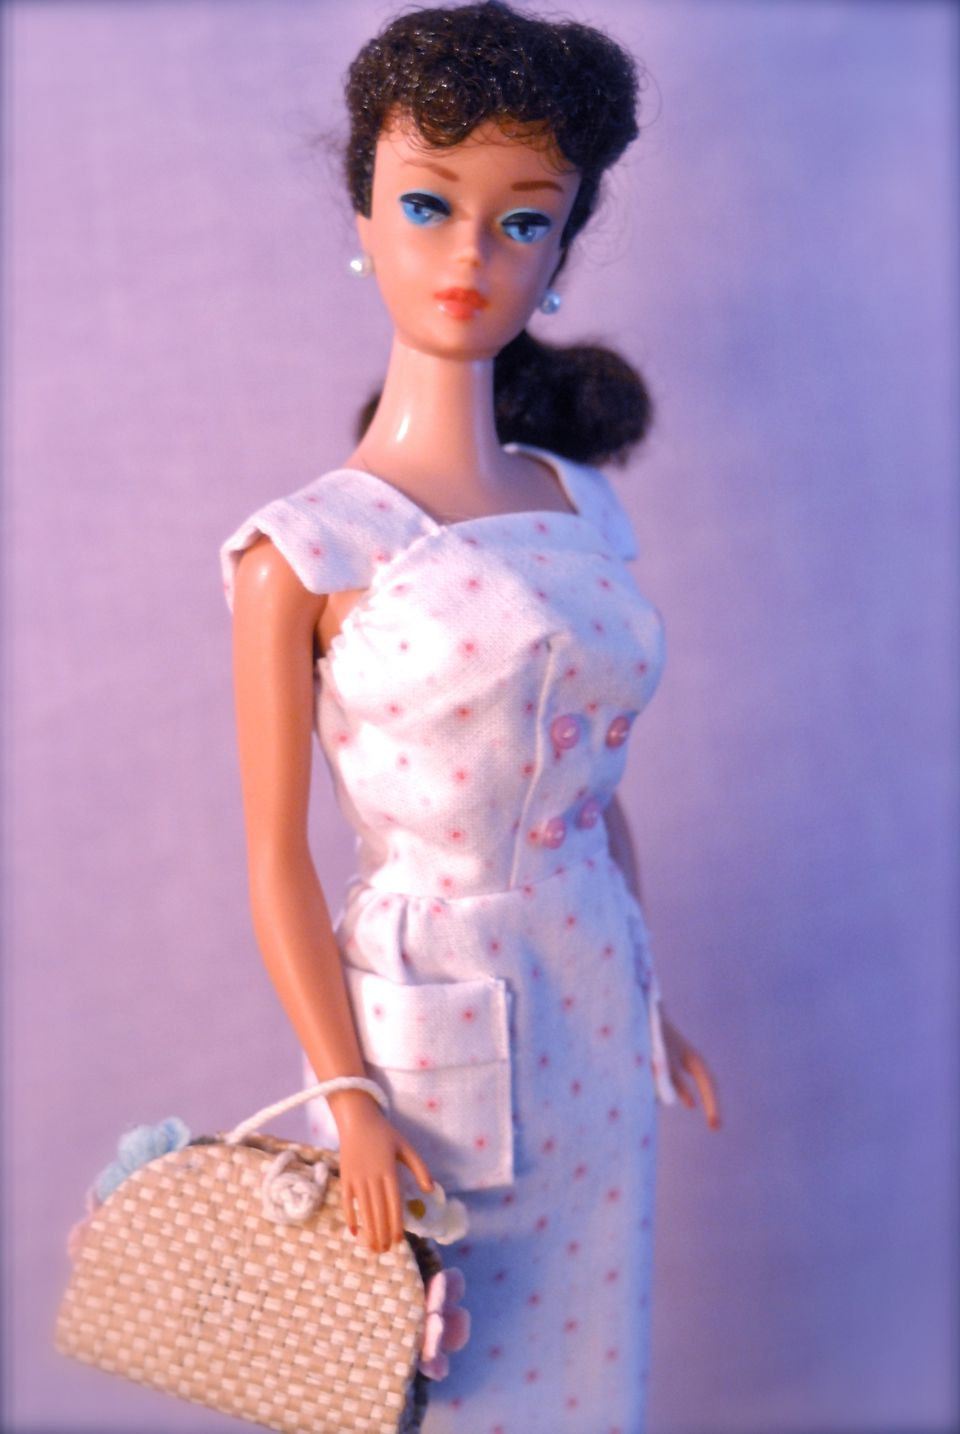 Vintage No. 6 Ponytail Barbie, Brunette